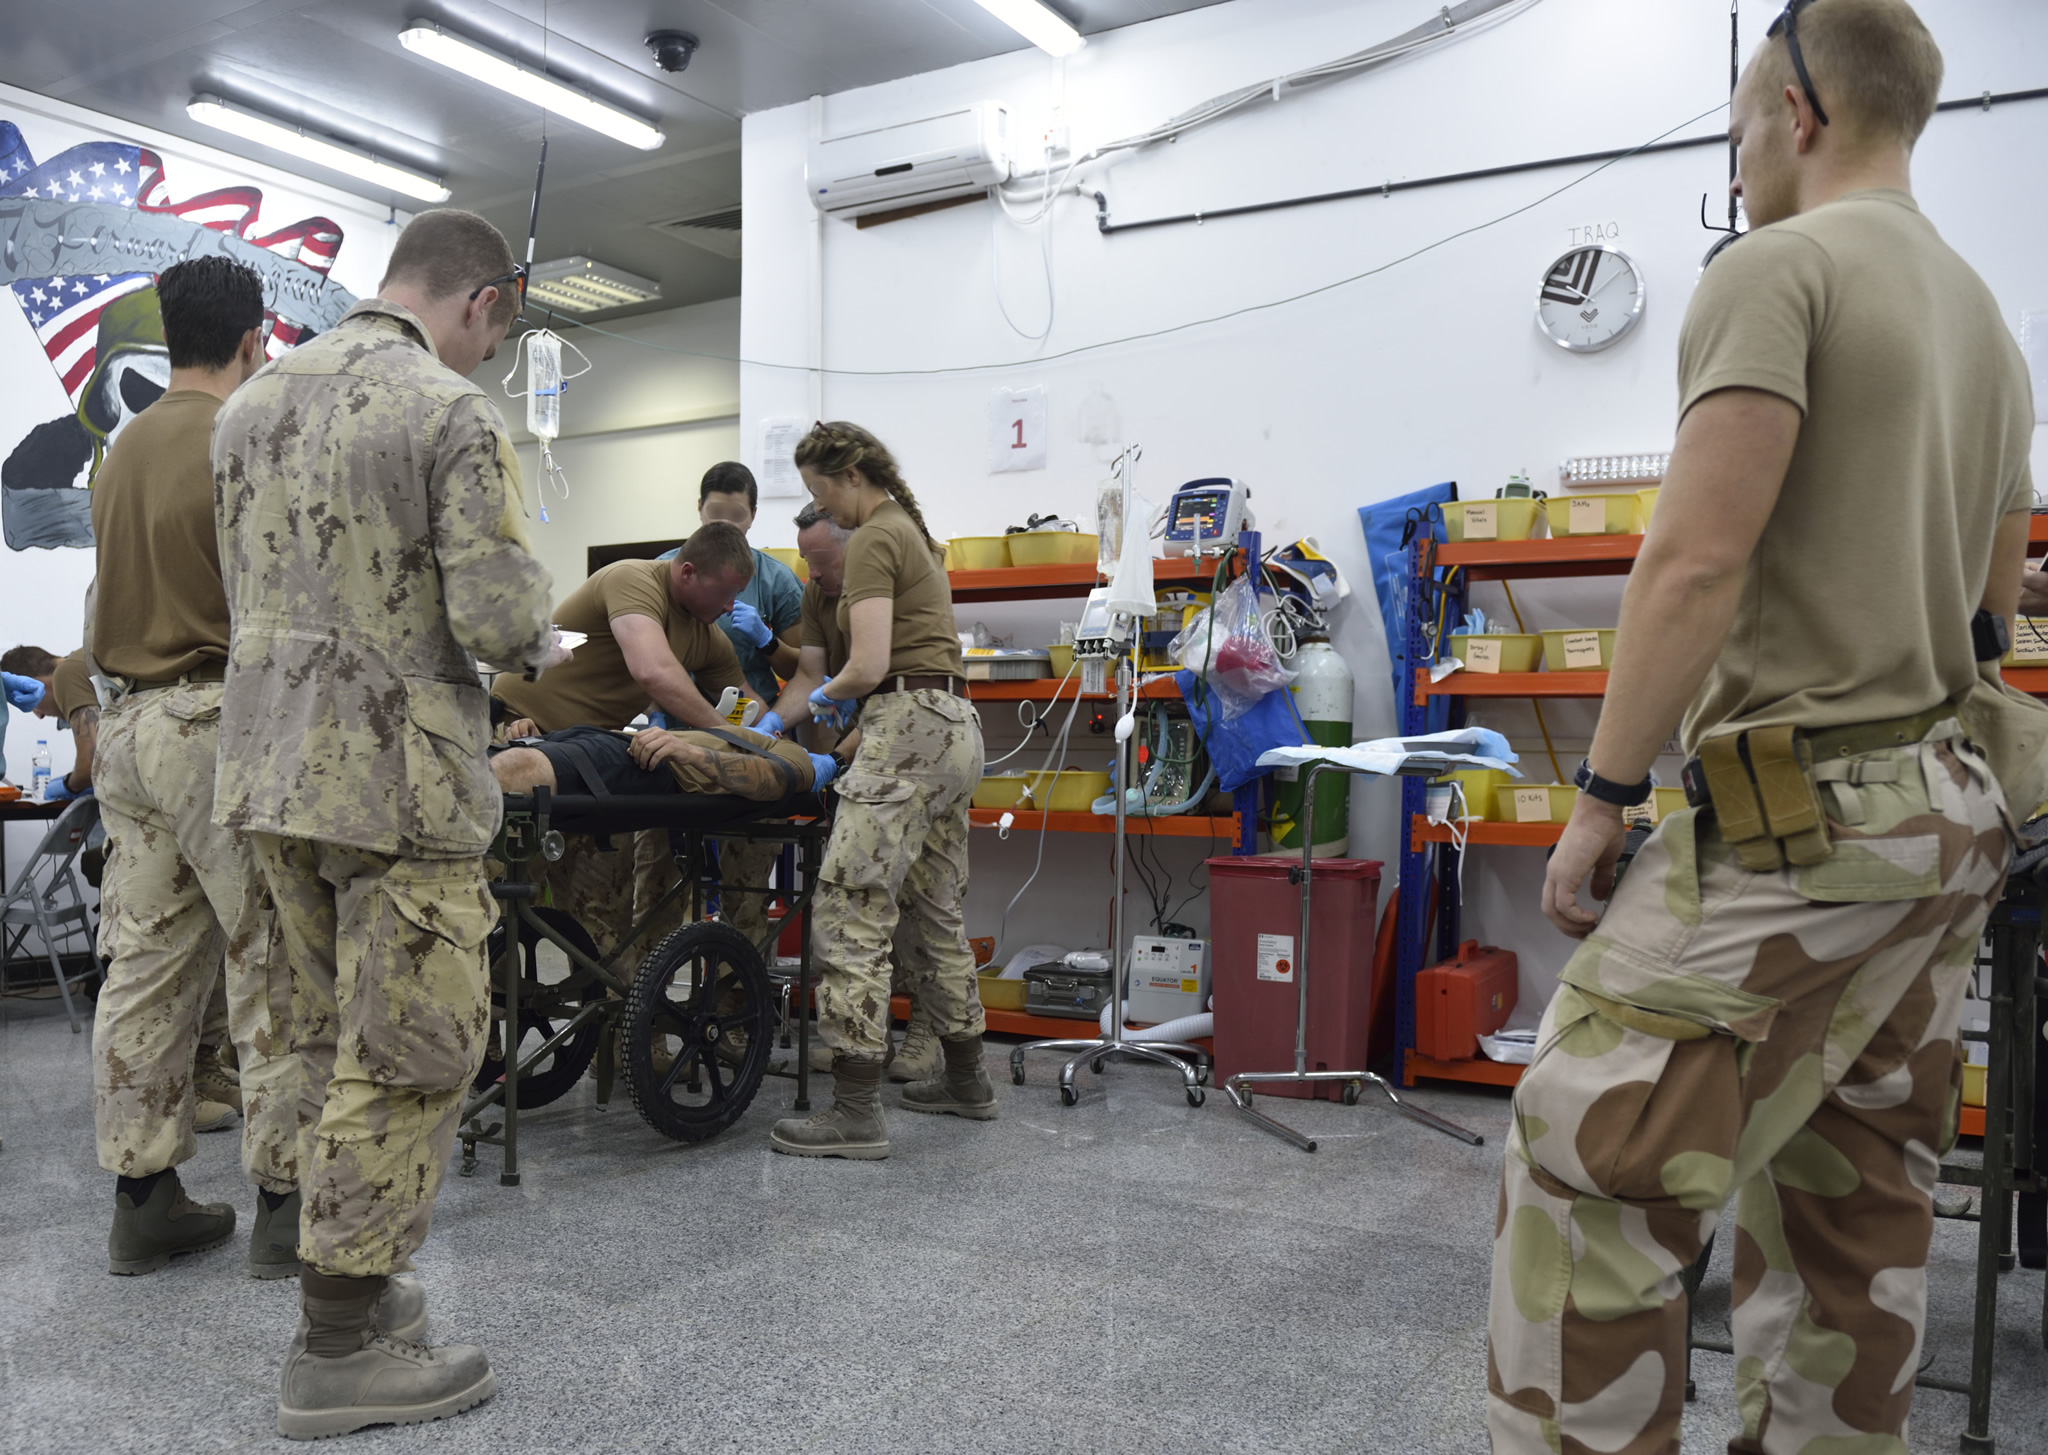 military medical staff surrounda patient on a bed with medical equipment in the background.